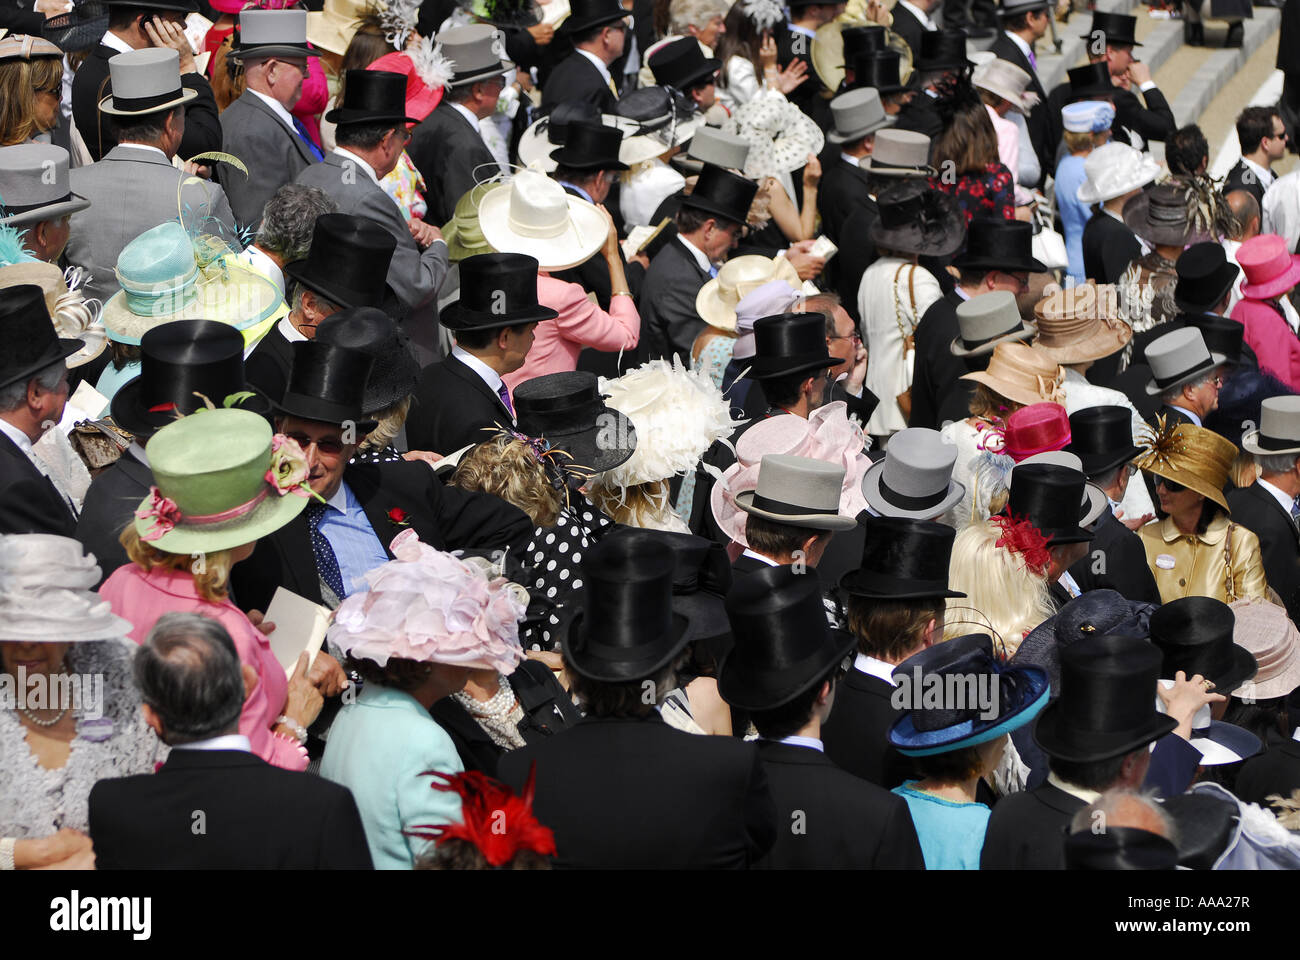 spectators at royal ascot, berkshire, englandStock Photo